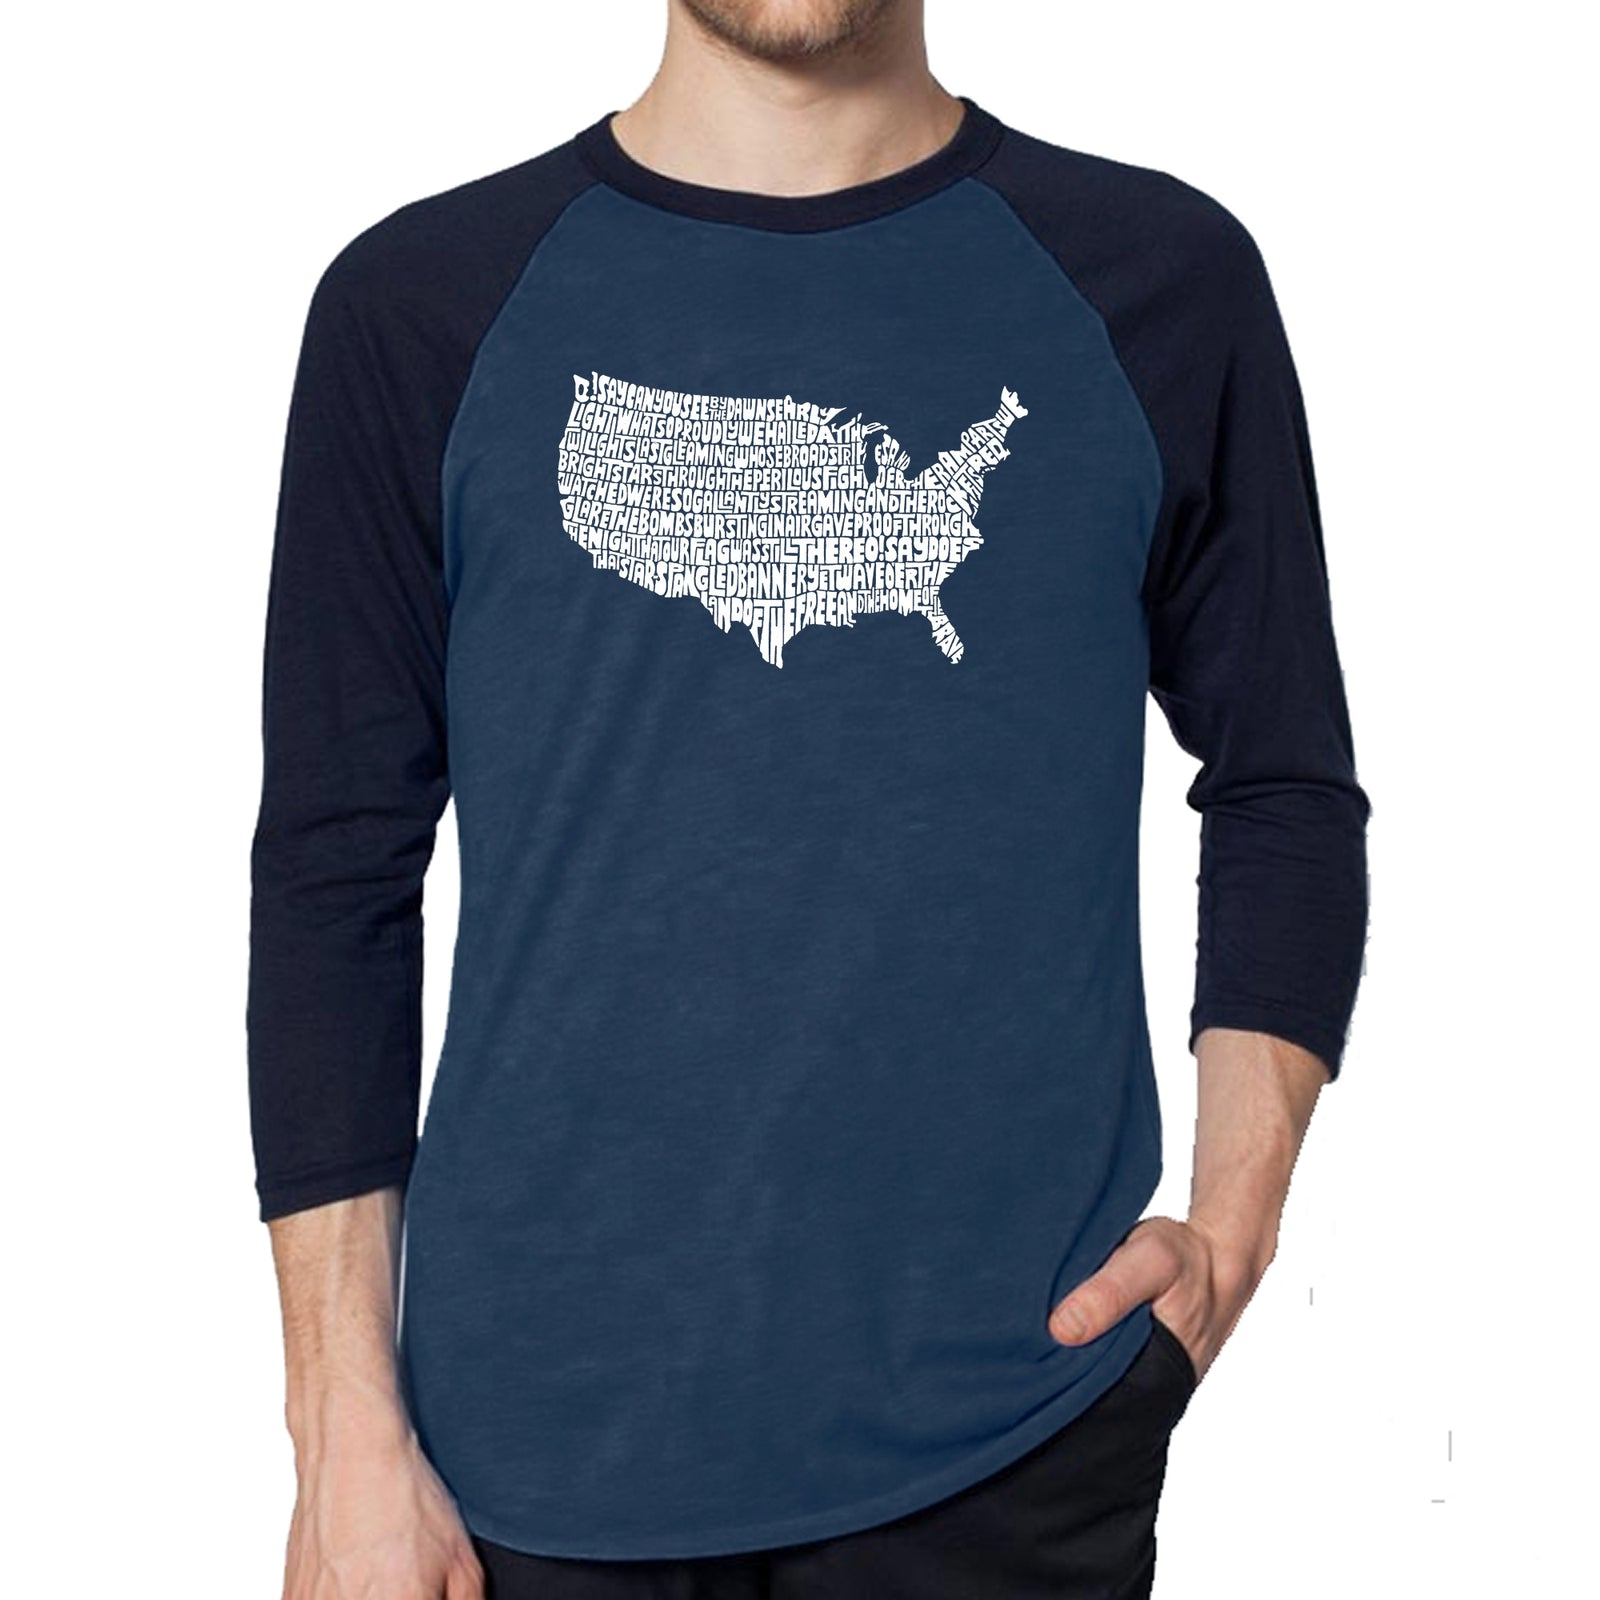 Men's Raglan Baseball Word Art T-shirt - THE STAR SPANGLED BANNER